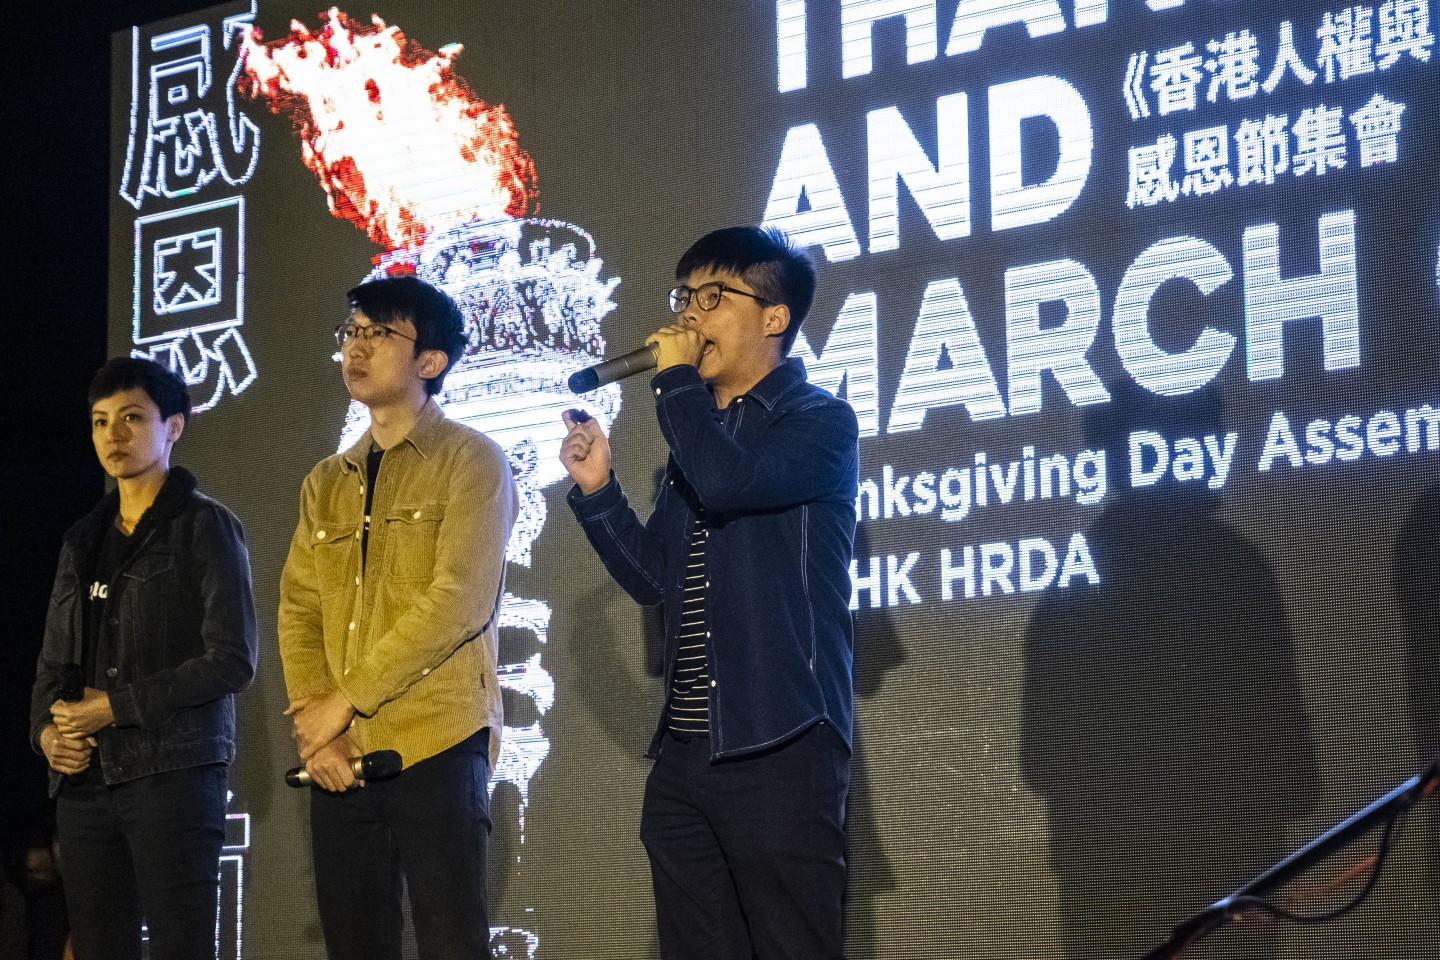 """Joshua Wong, co-founder of the Demosisto political party, delivers a speech during the """"Thanksgiving Day Assembly for Hong Kong Human Rights and Democracy Act"""" at Edinburgh Place in the Central district of Hong Kong, China, on Thursday, Nov. 28, 2019. Donald Trump signed legislation expressing U.S. support for Hong Kong protesters, prompting China to threaten retaliation just as the two nations get close to signing a phase one trade deal. Photographer: Chan Long Hei/Bloomberg"""